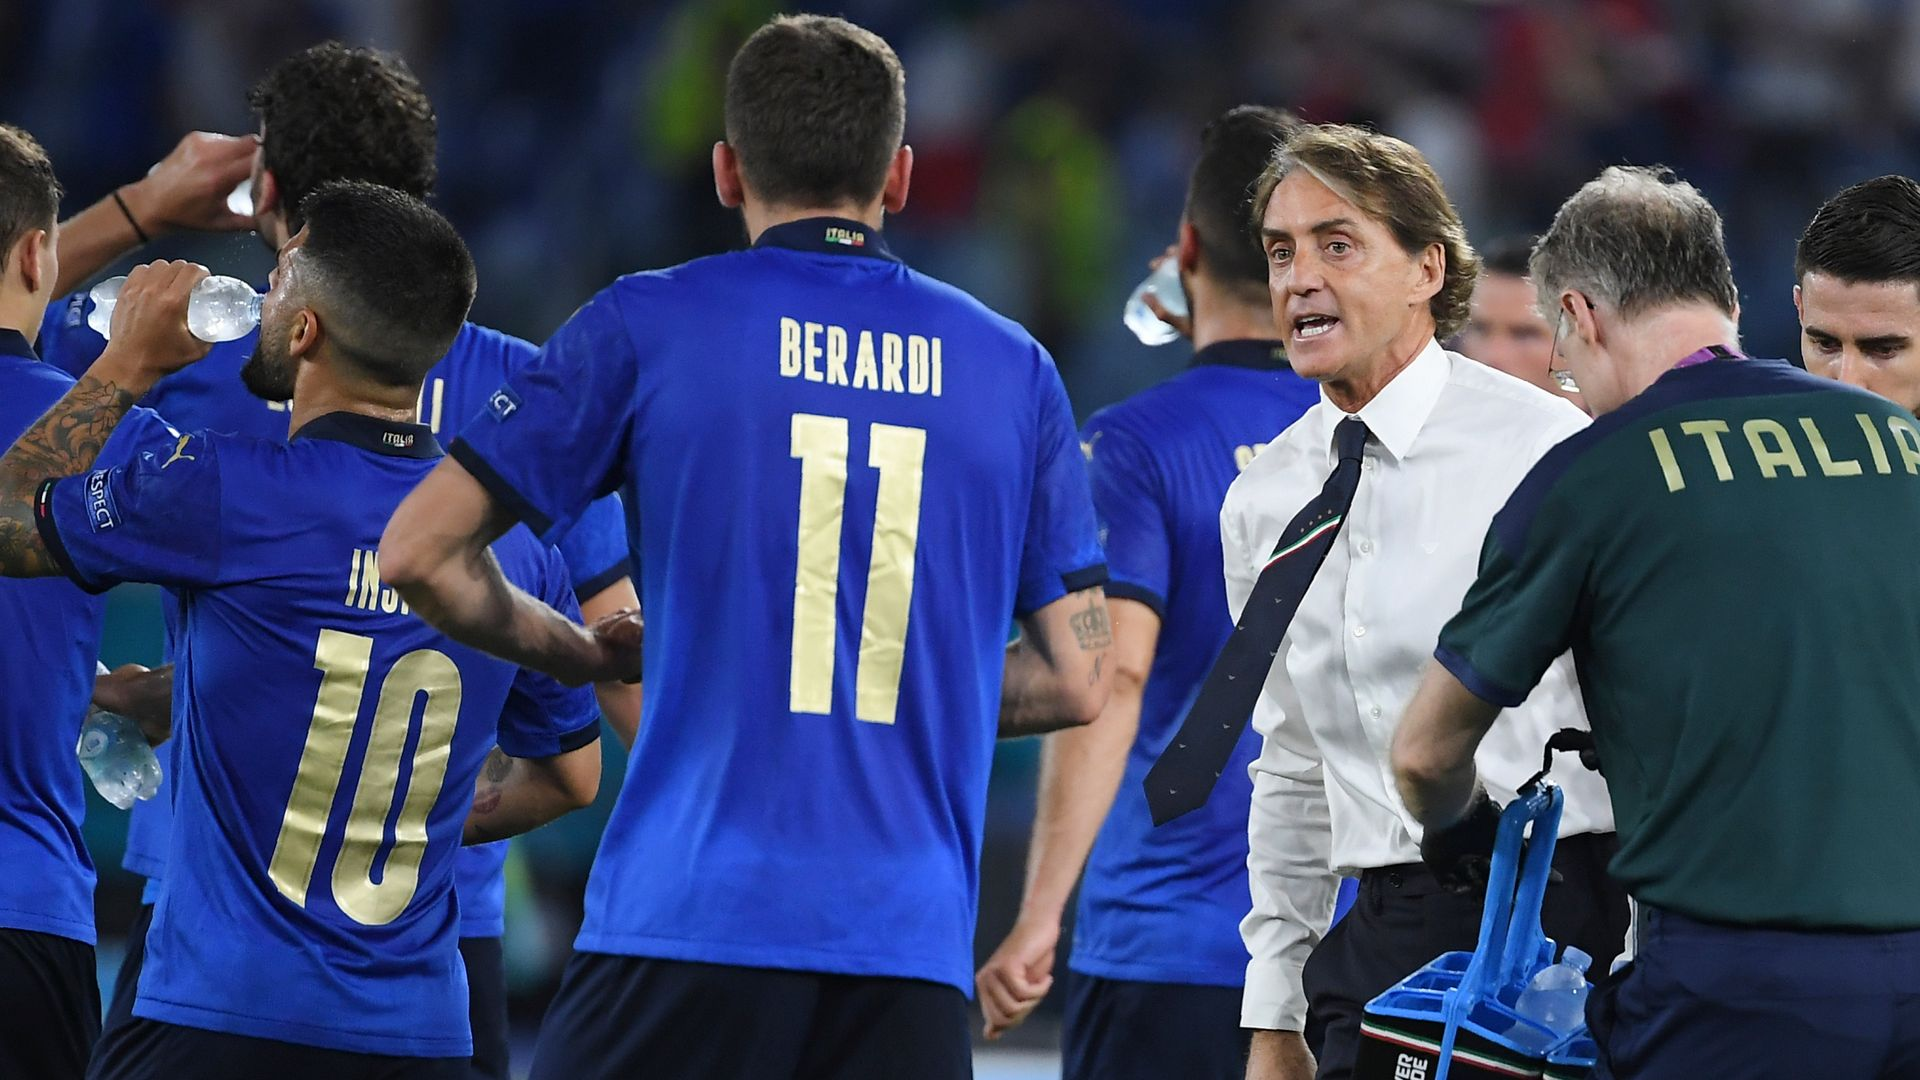 Mancini: We have what it takes to win Euro 2020 - sky sports